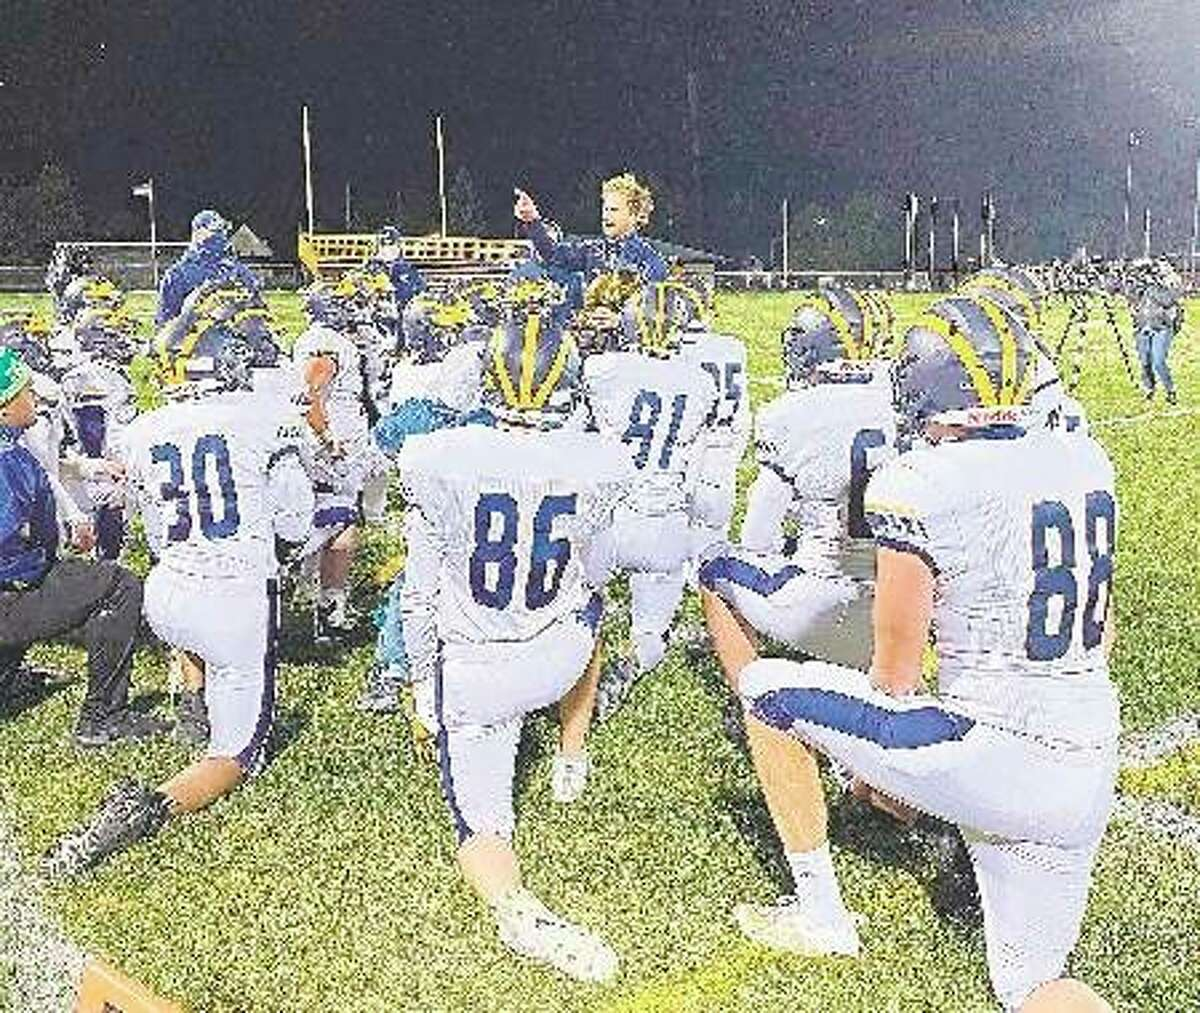 Manistee football coach Troy Bytworkaddress his team after a victory over Ludington last season. On Tuesday, Manistee Area Public Schools reported three positive cases of COVID-19 on the team; practice started on Monday. (File photo)